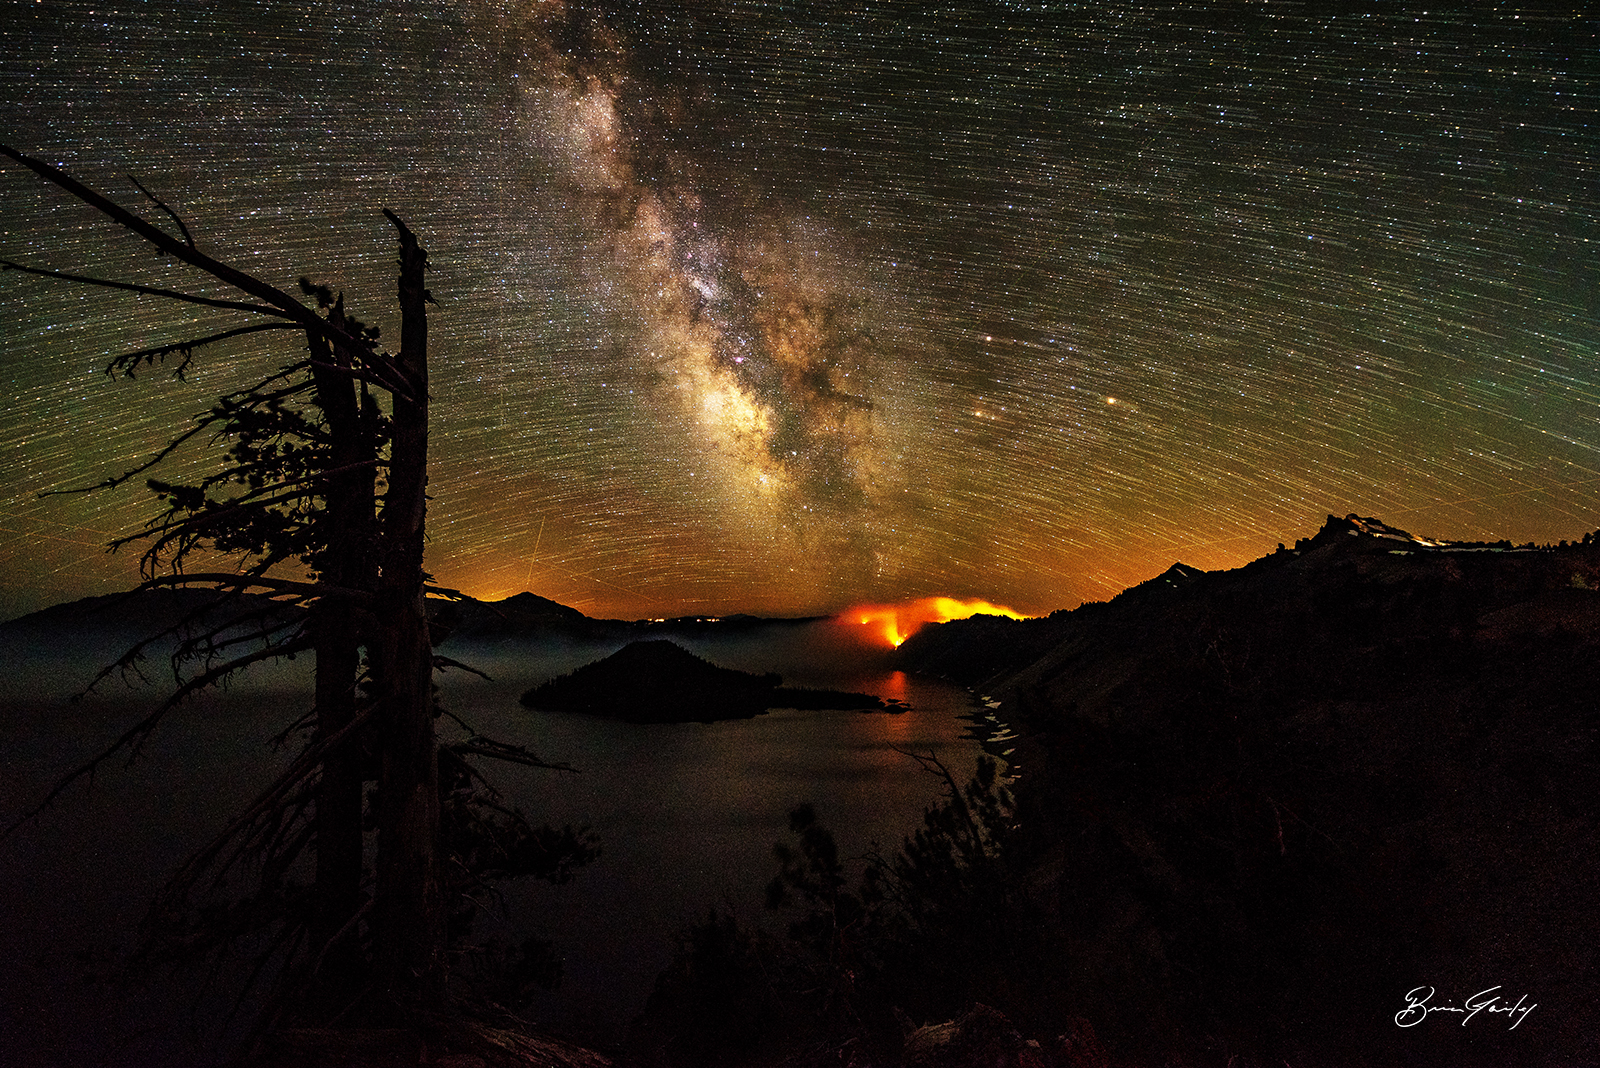 Night on the Bybee Fire ( Brian Gailey Photography )